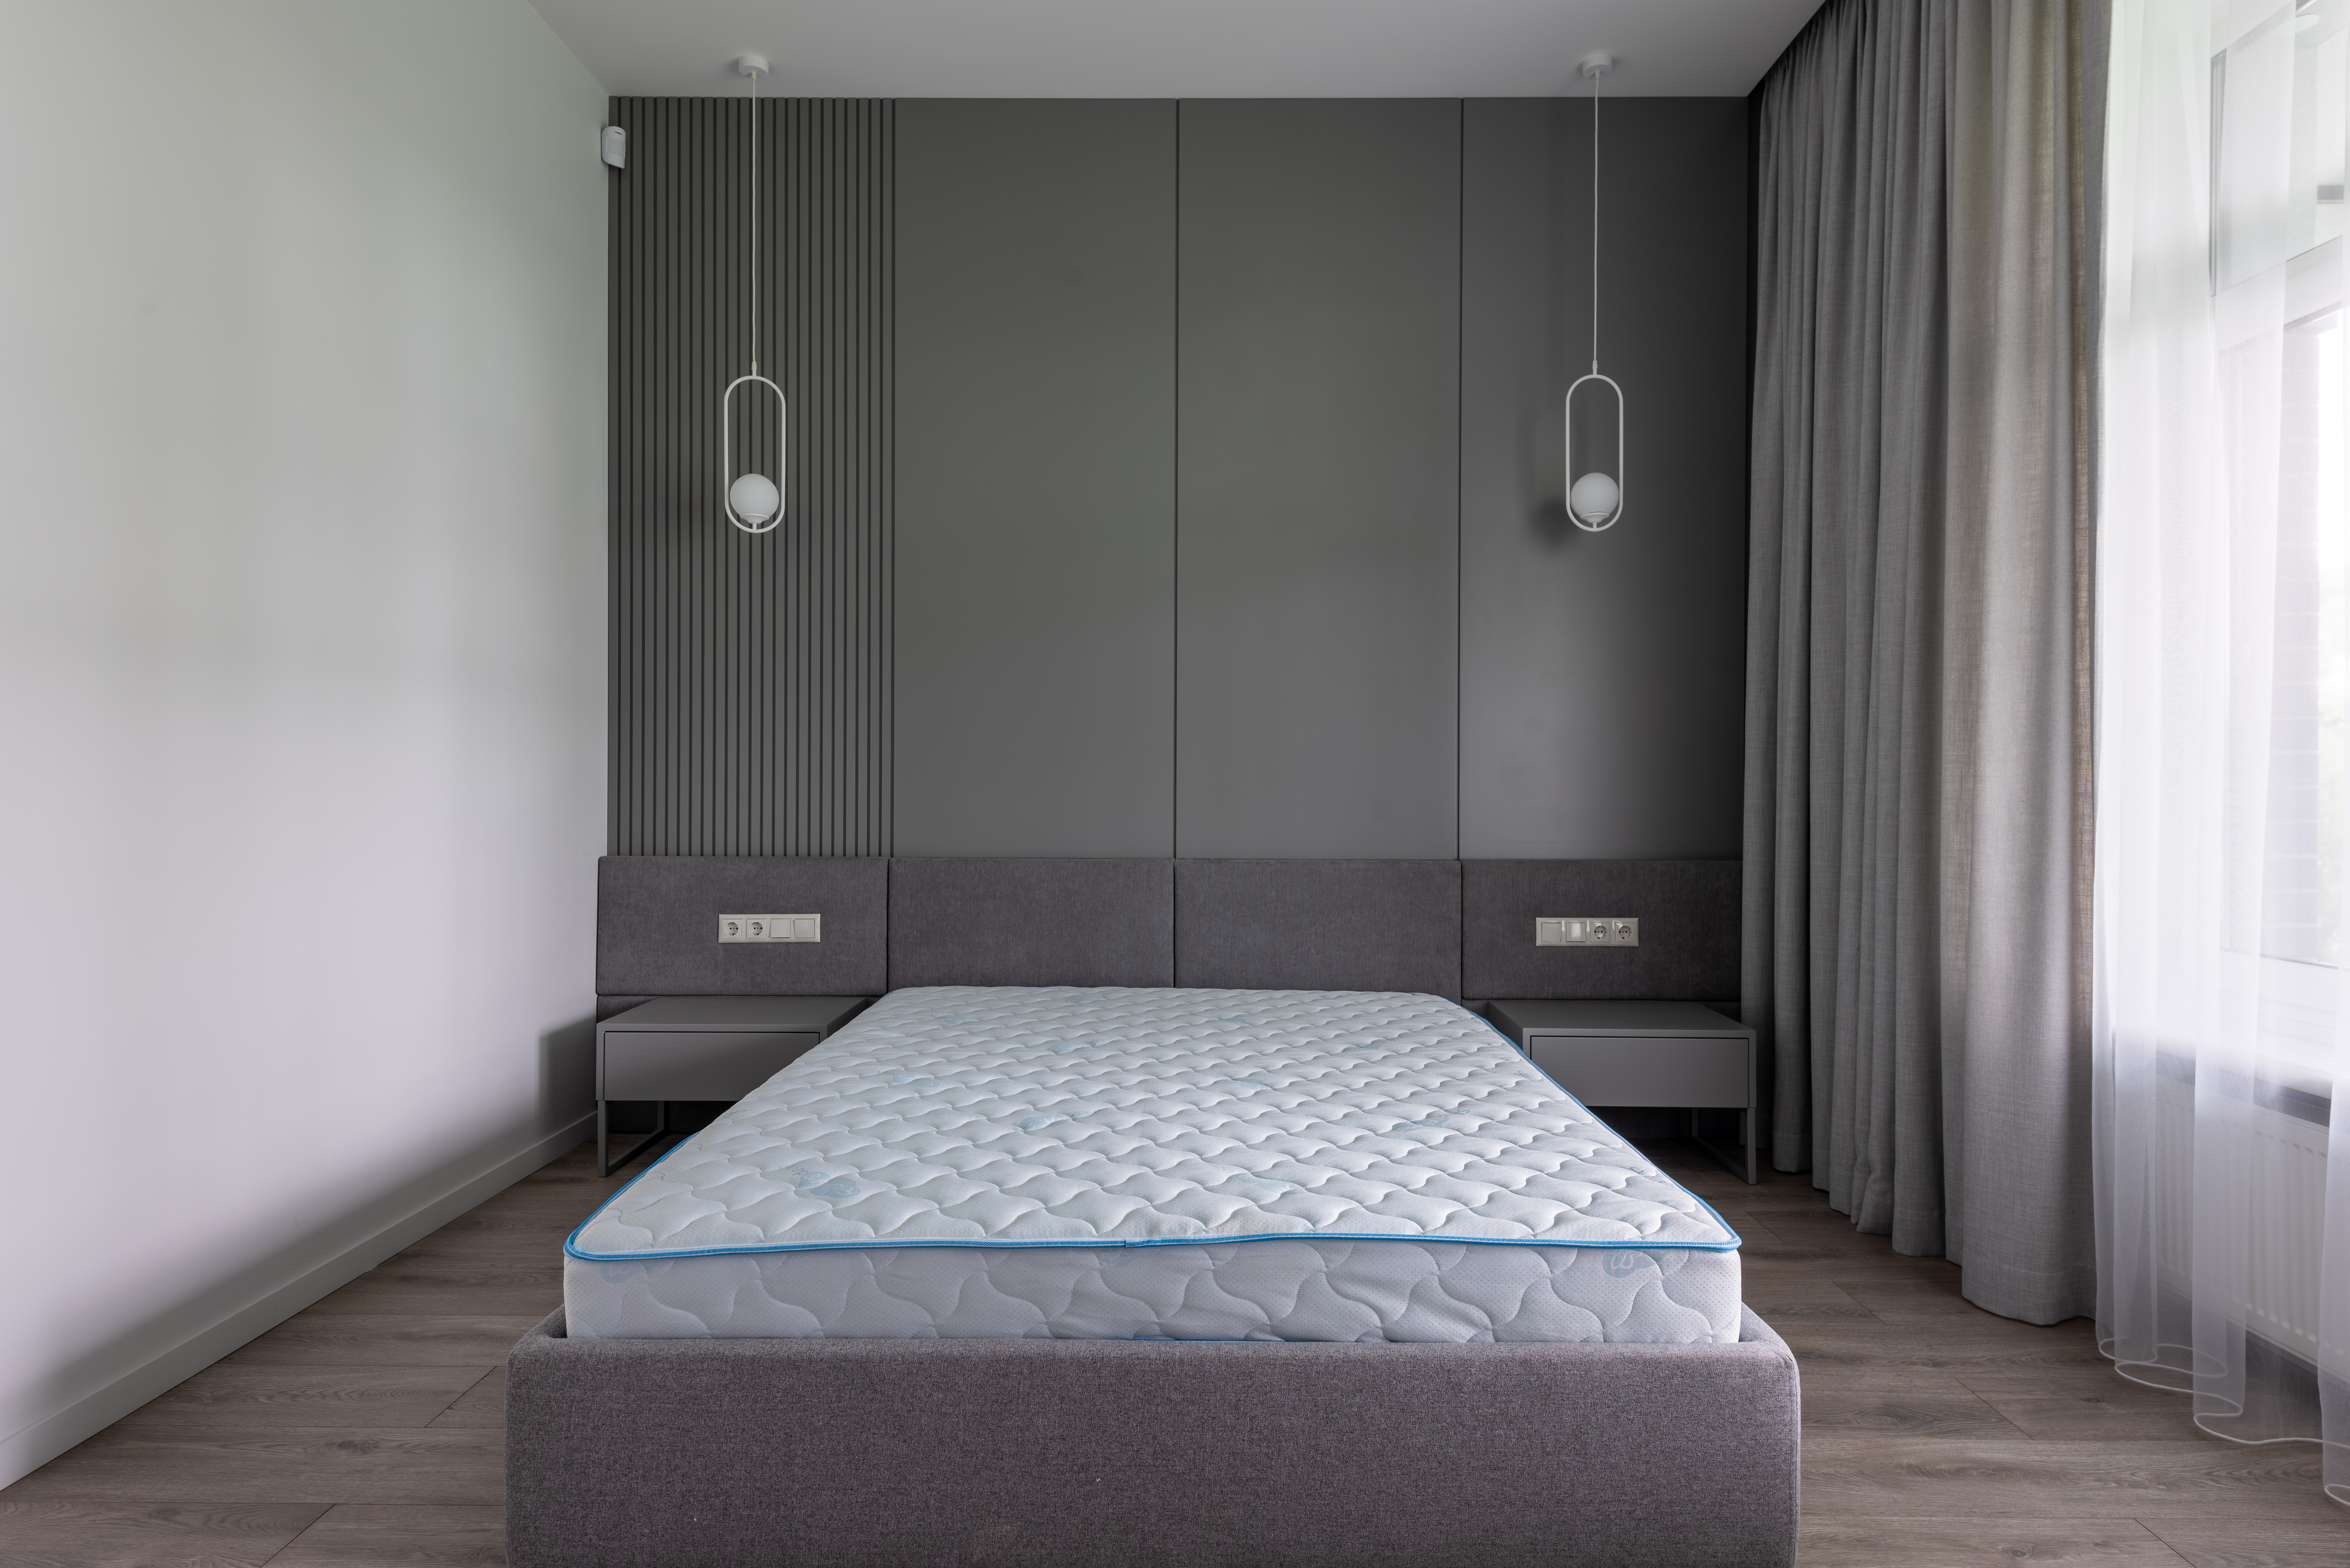 bed with soft orthopedic mattress in bedroom